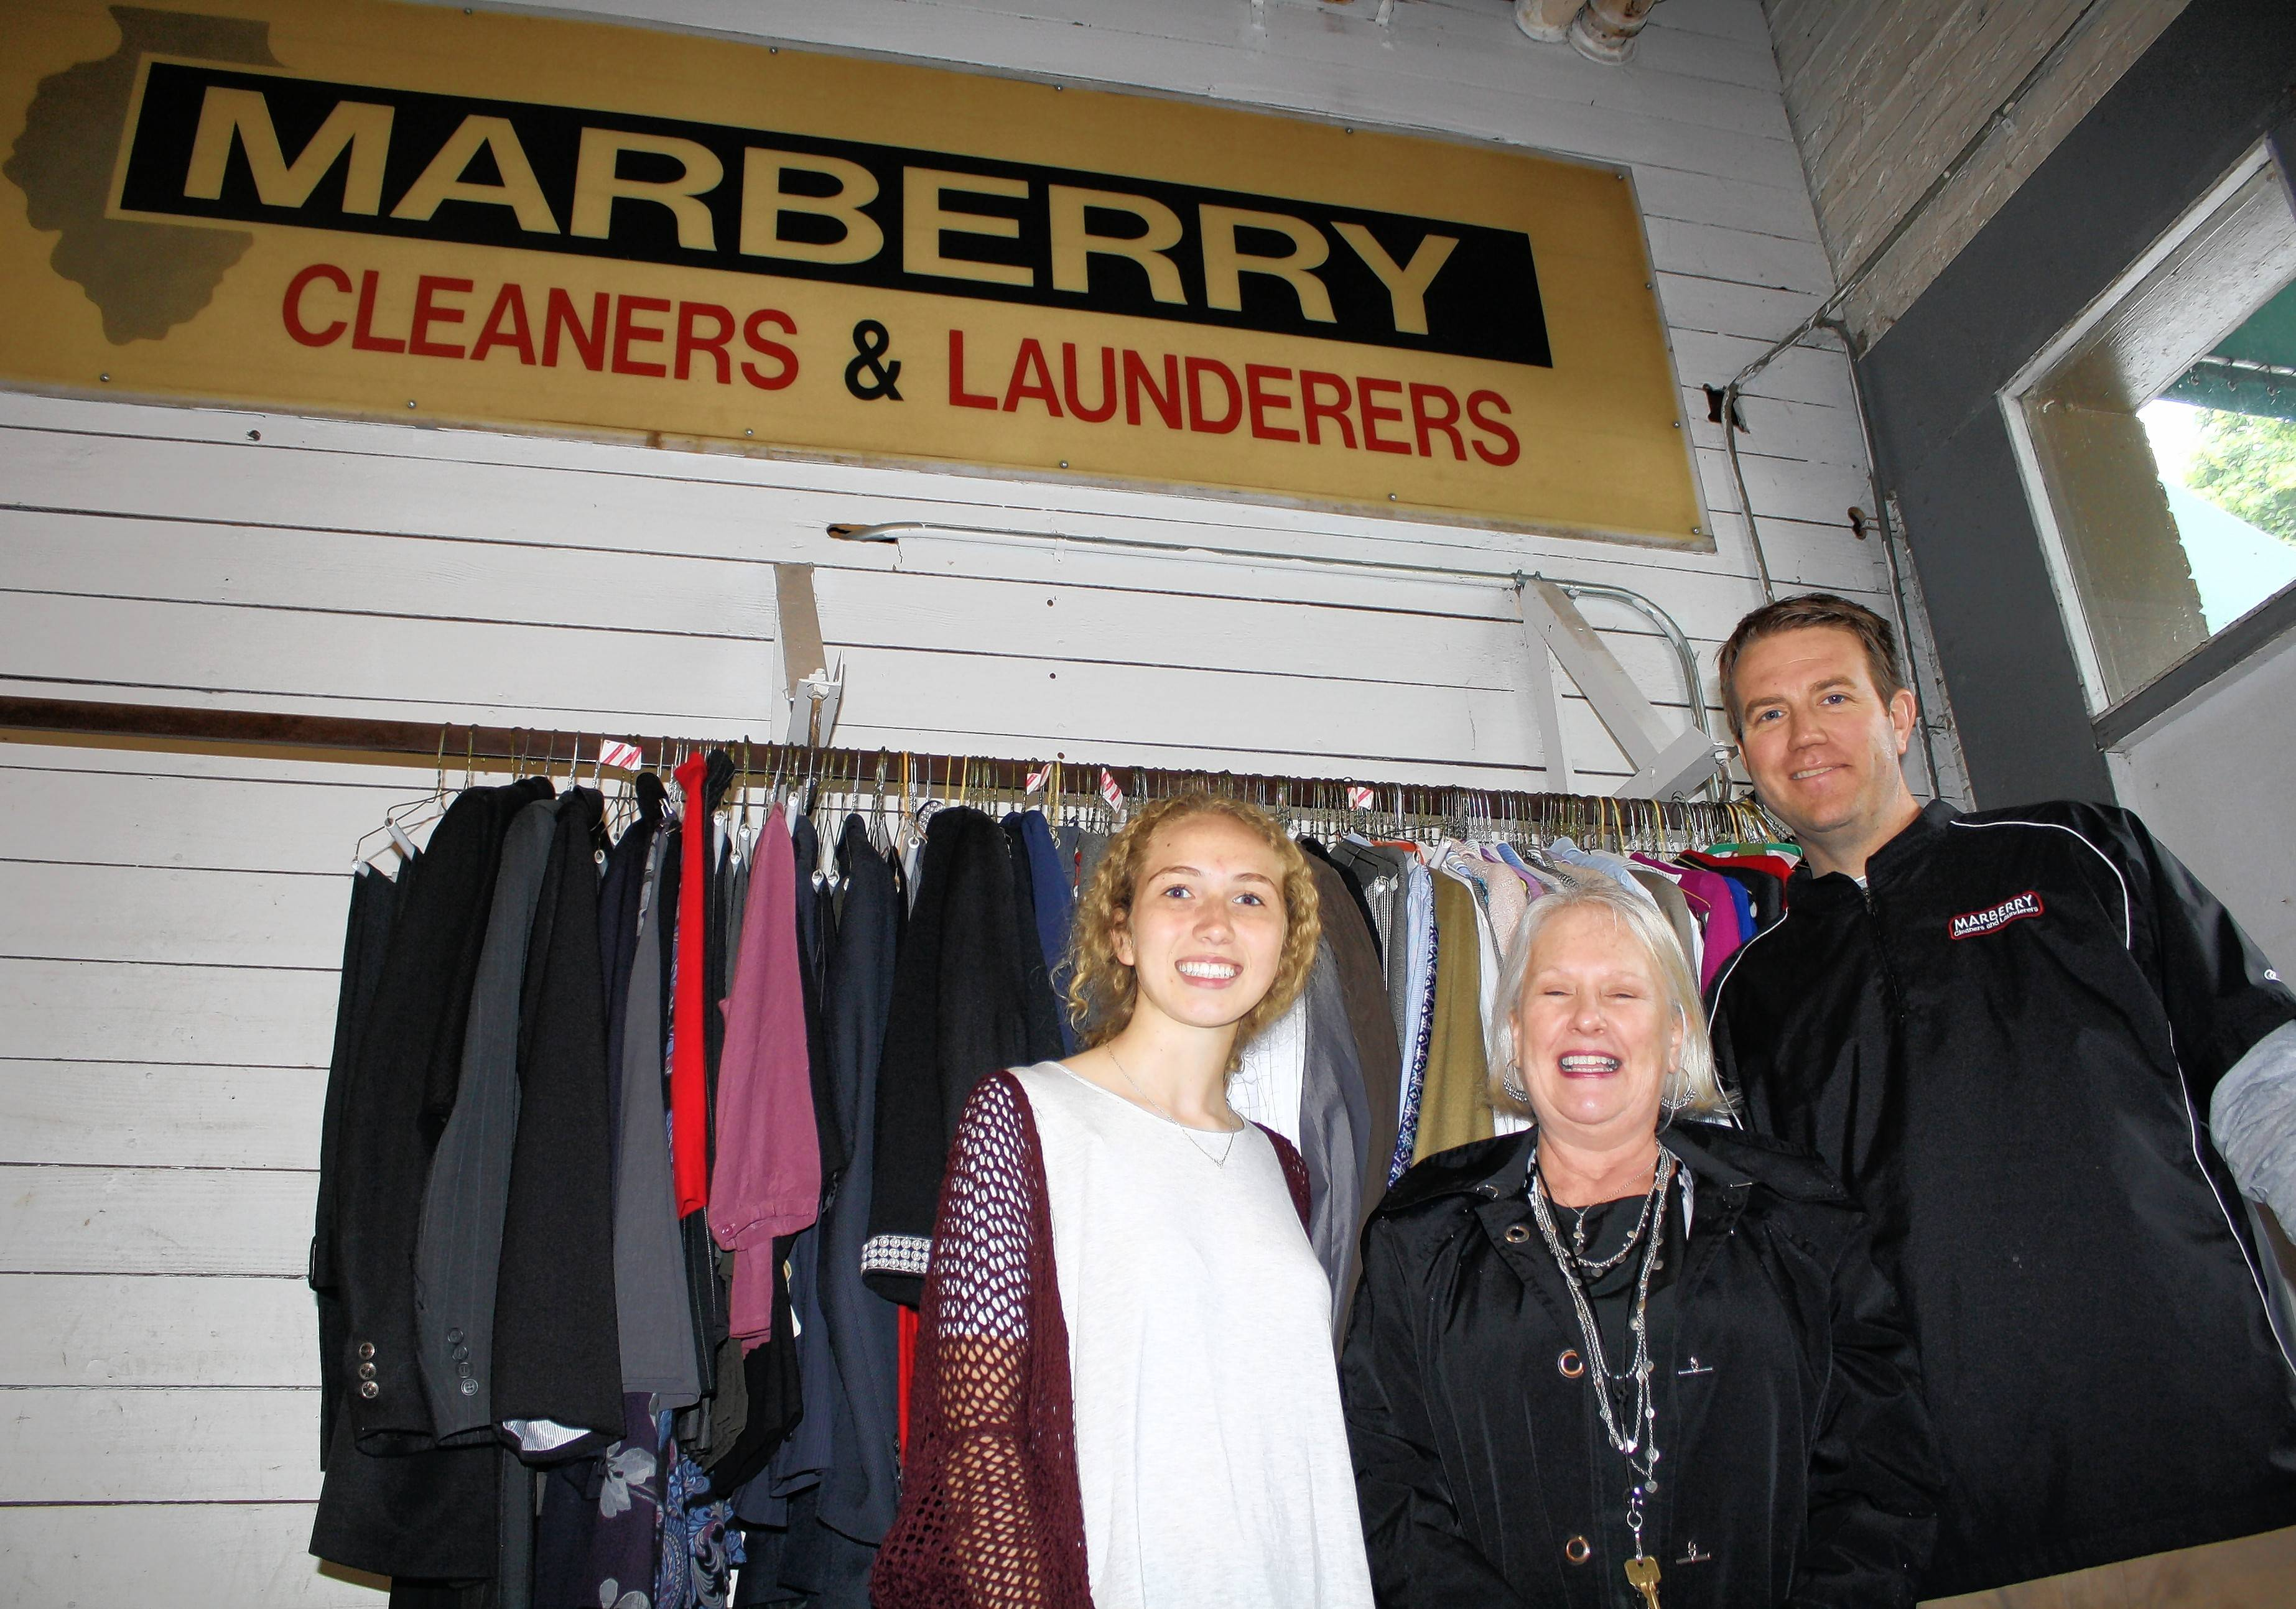 St. Charles East student Courtney Hydar joins Batavia Clothes Closet Executive Director Diane Upton and Marberry owner Dave Marberry at the pickup of donations for the clothing drive.